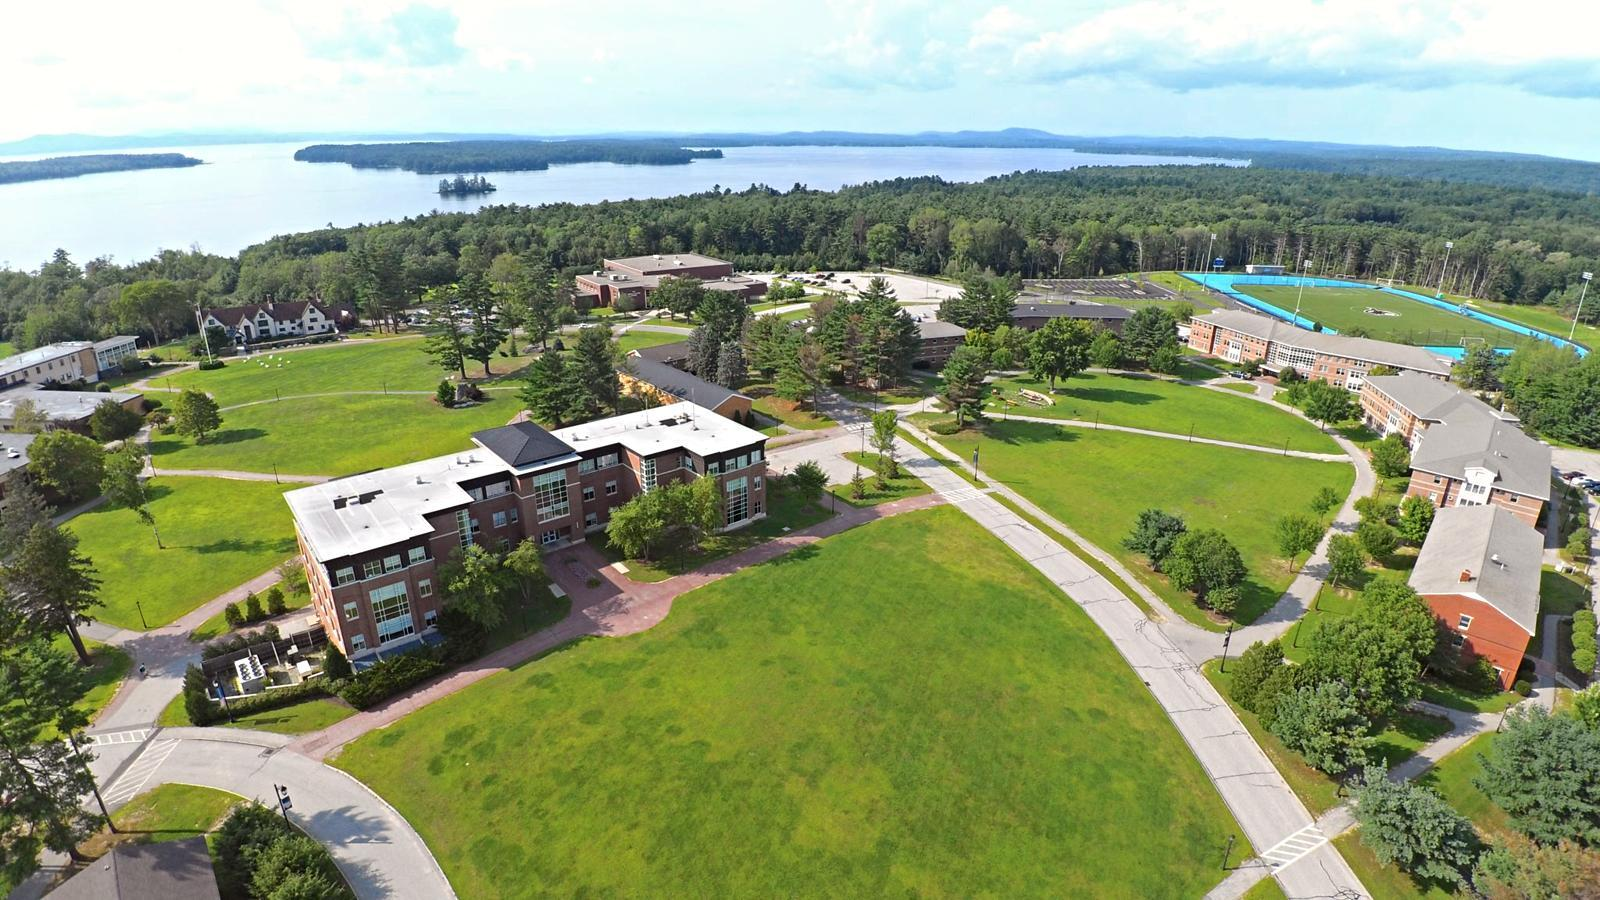 Image: Saint Joseph's College's campus on the water